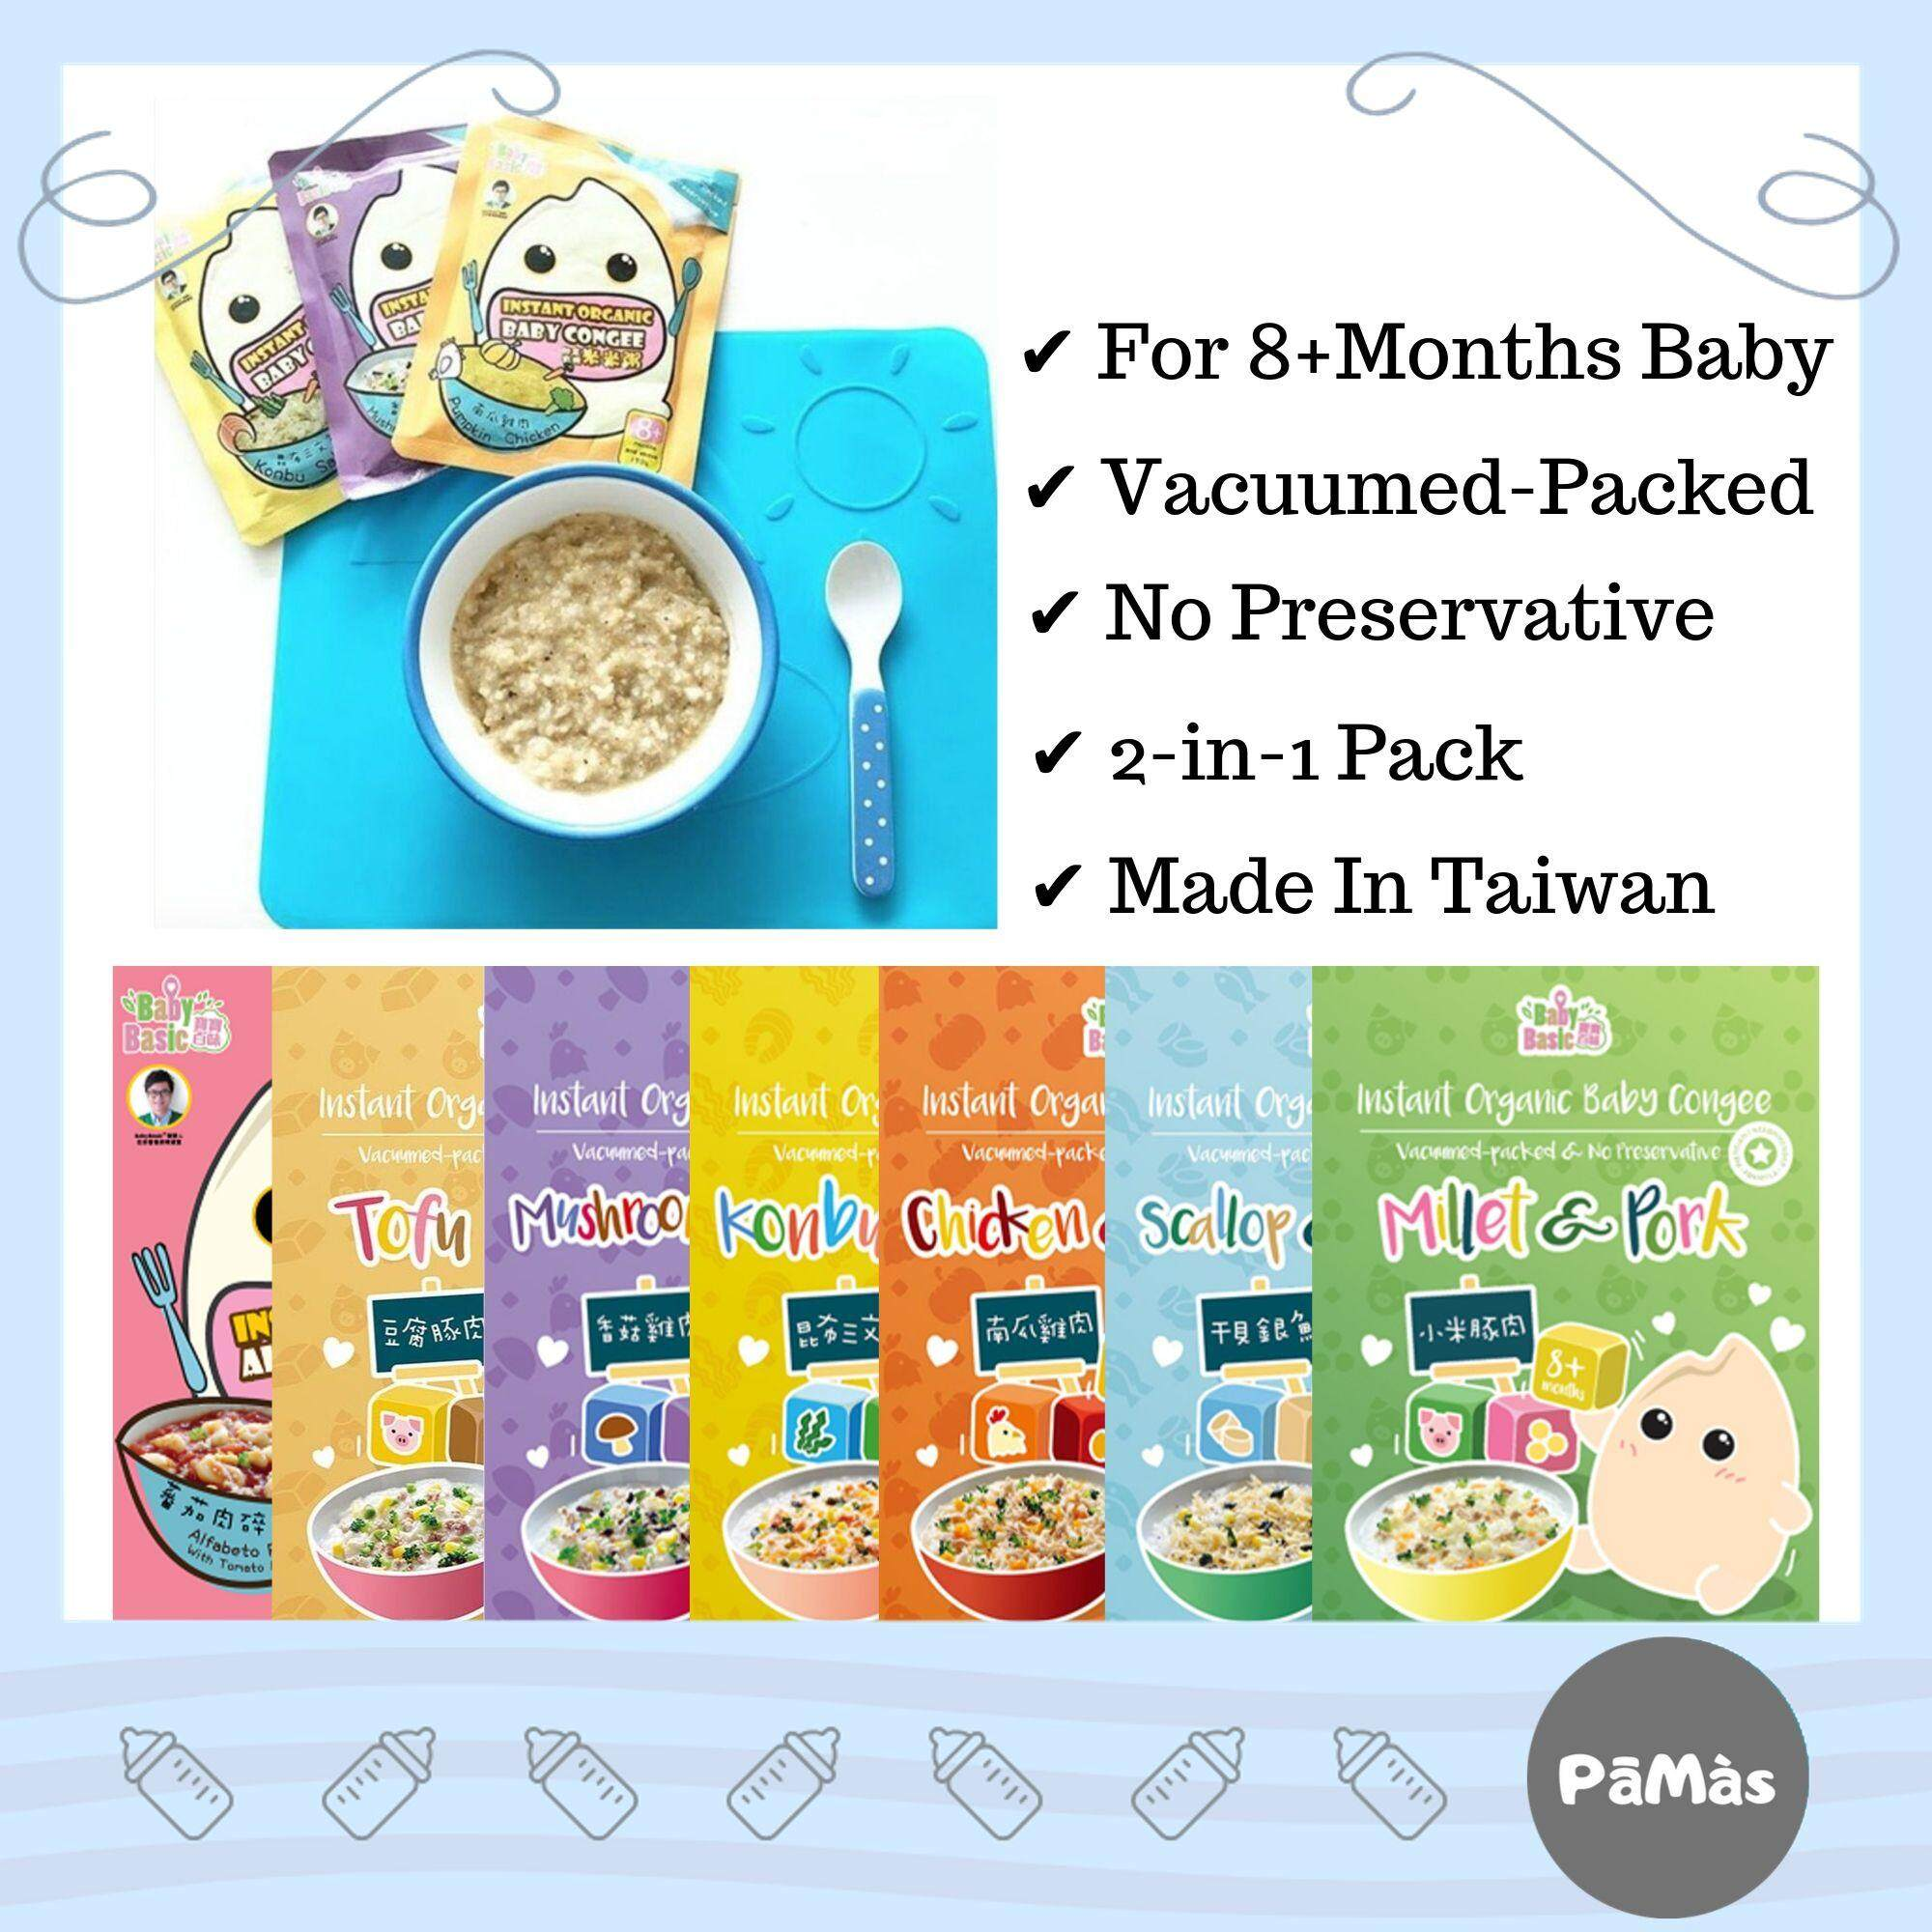 Baby Basic Instant Porridge Congee / Pasta 宝宝百味即食粥 For Baby(Organic)(Non-Halal),Baby Food, Pack, Porridge, Easy To Bring, Baby Basic image on snachetto.com